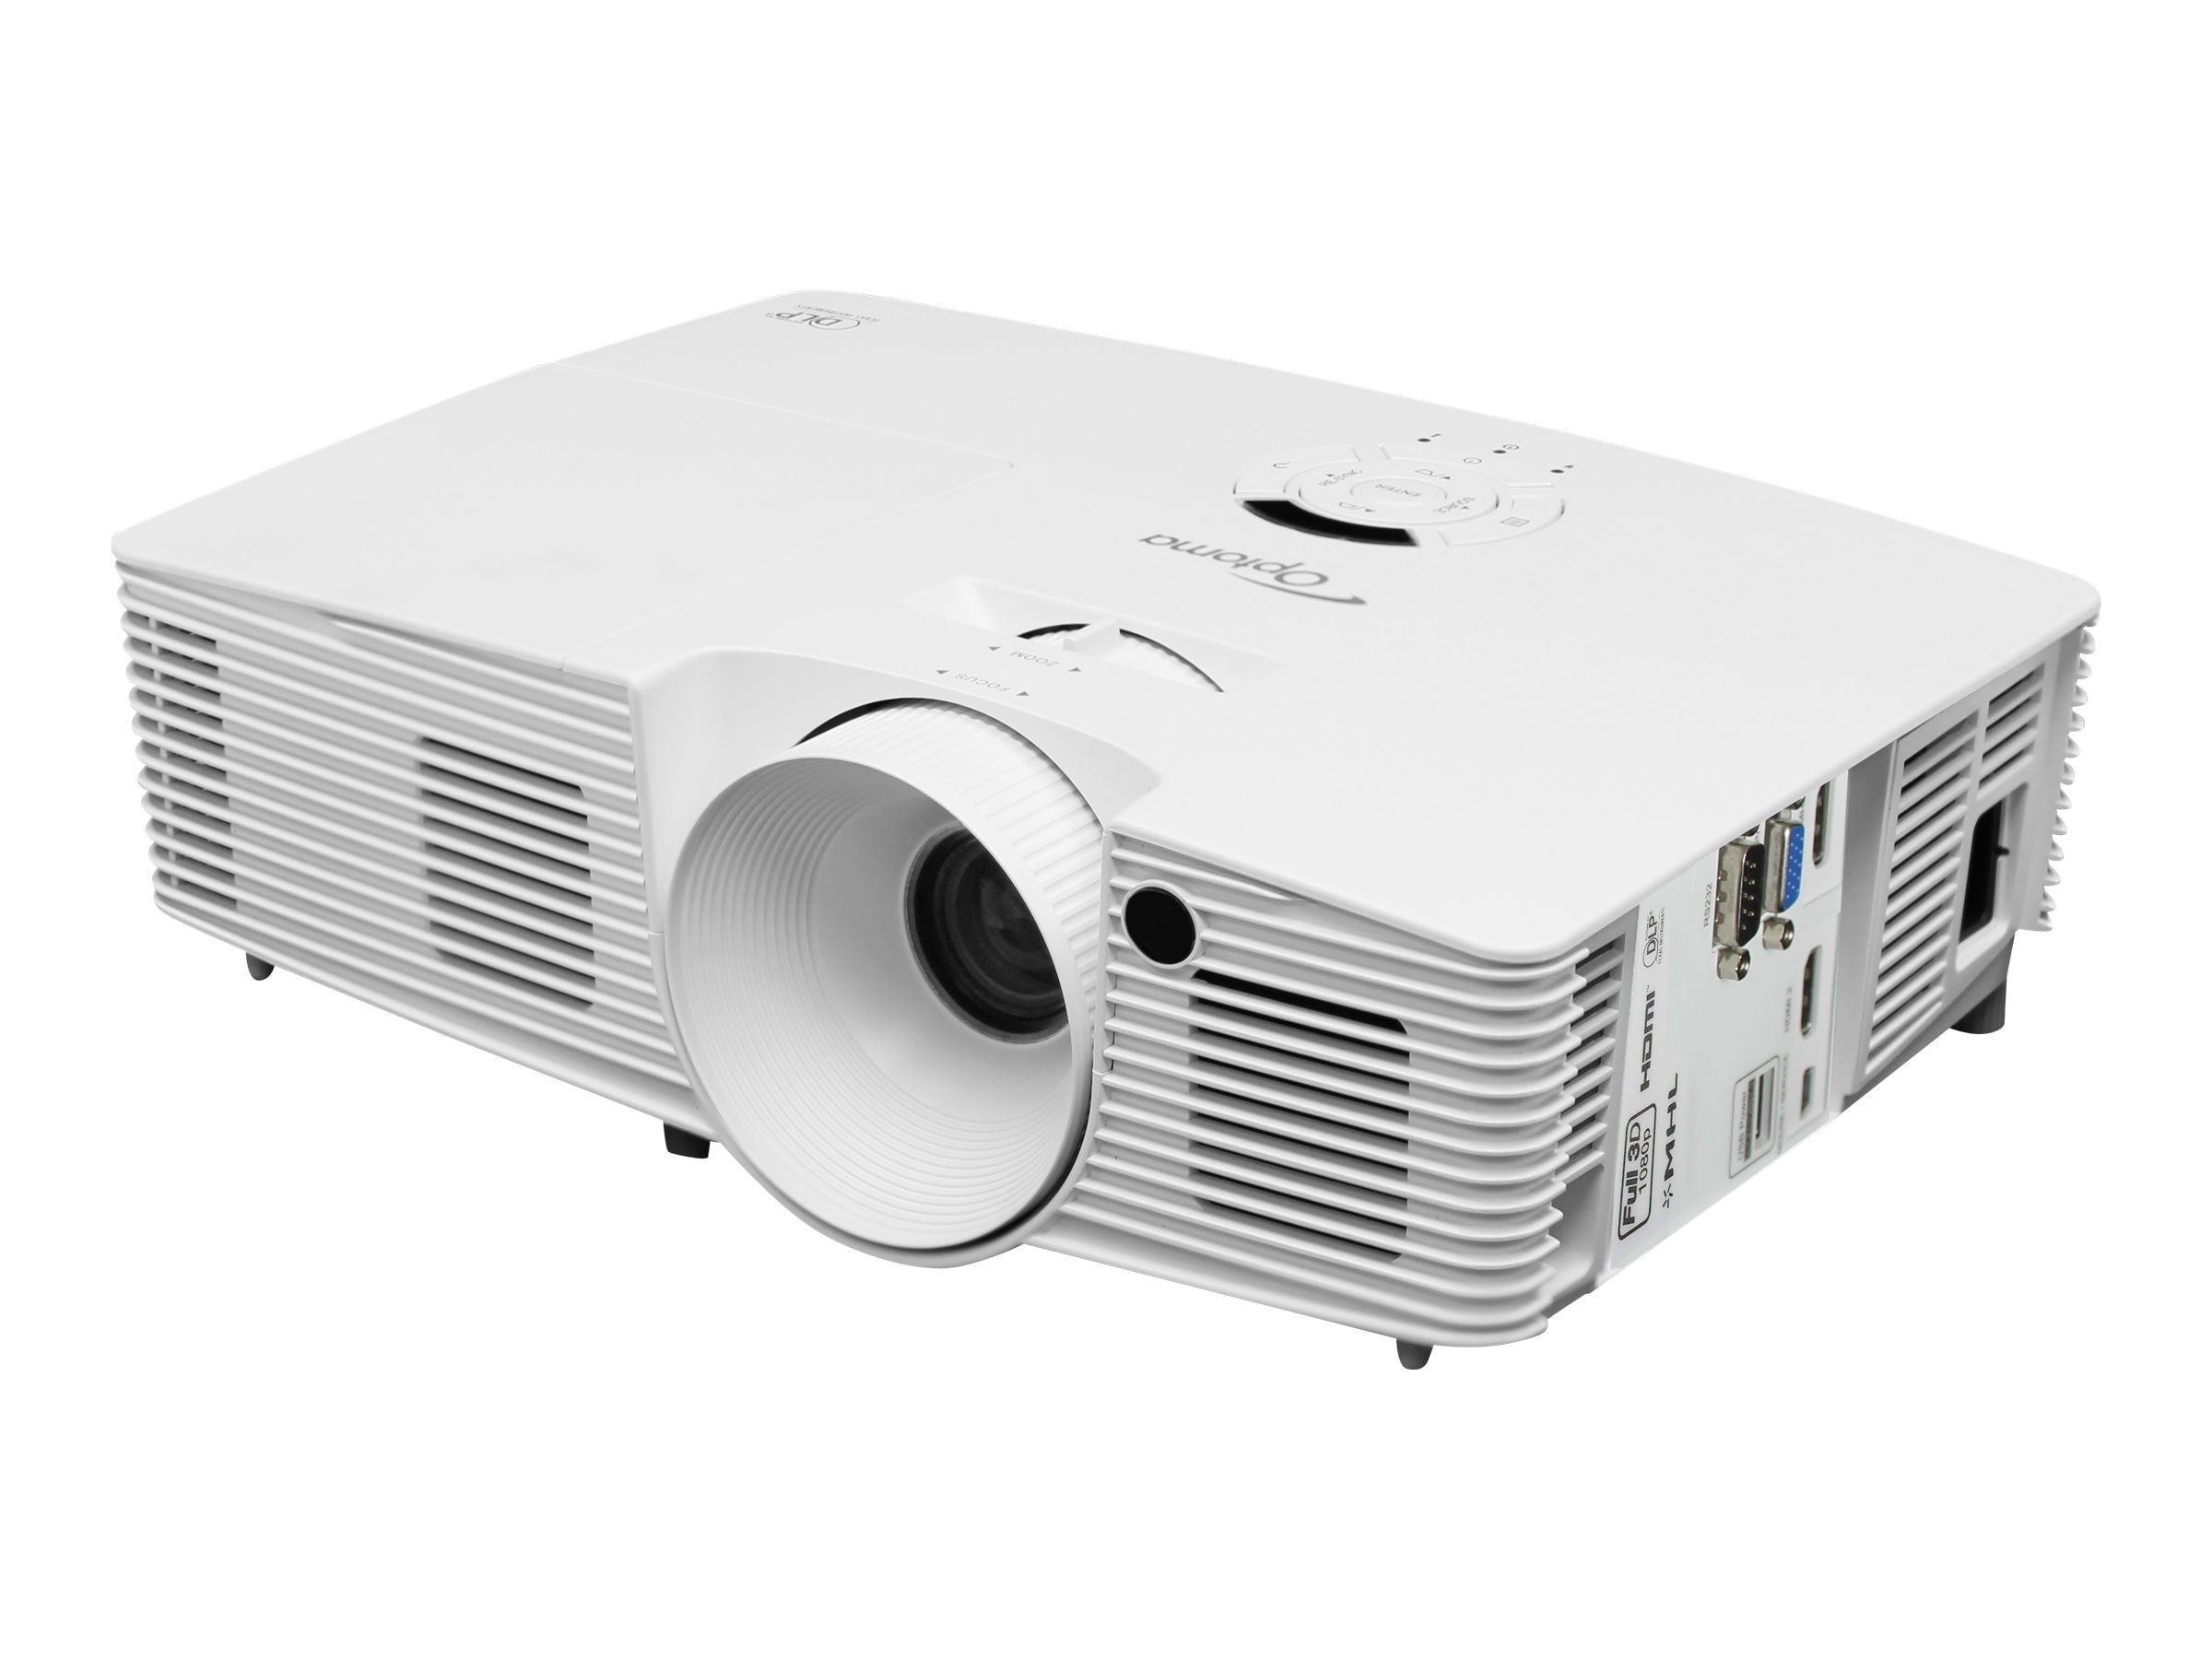 Optoma DH1012 Full HD 3D Projector, 3200 Lumens, White